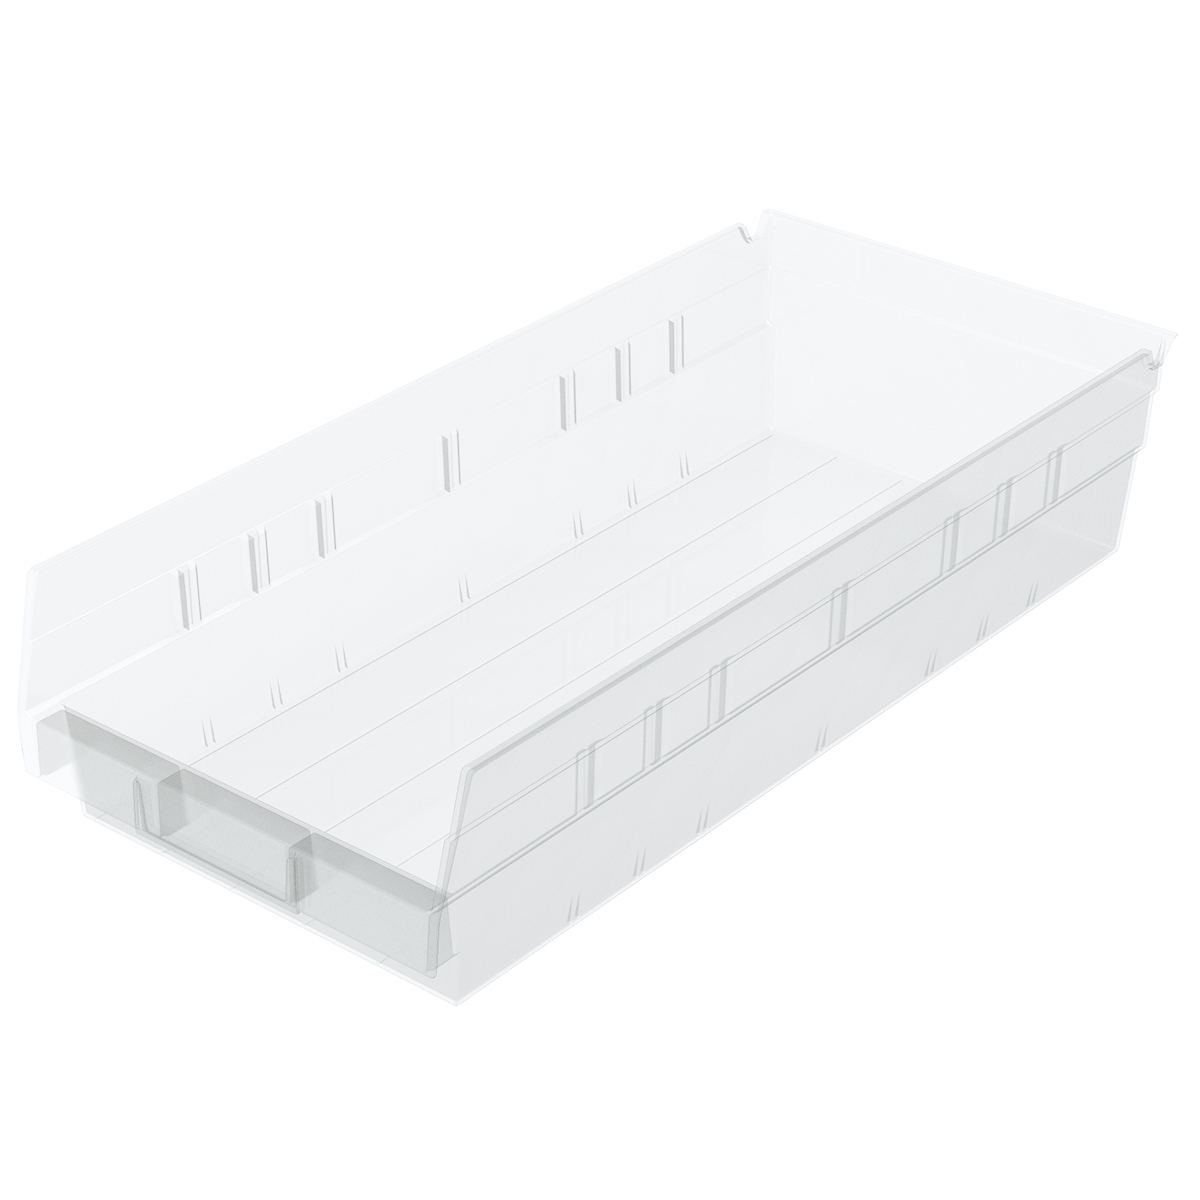 Shelf Bin 17-7/8 x 8-3/8 x 4, Clear (30158SCLAR).  This item sold in carton quantities of 12.